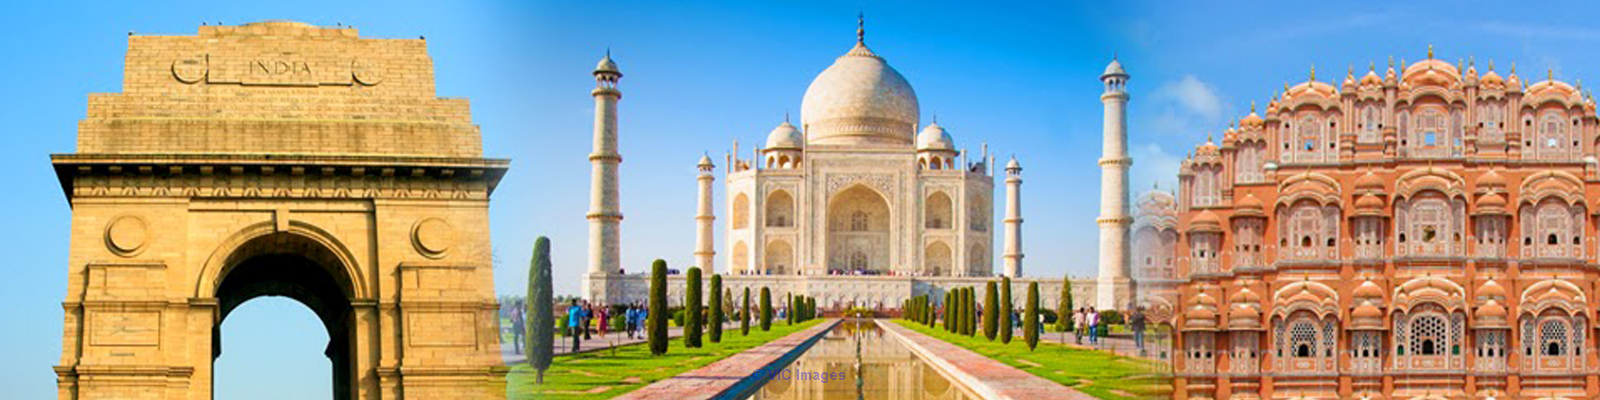 Golden triangle tour with rajasthan at India Luxury travel Company Calgary, Alberta, Canada Annonces Classées